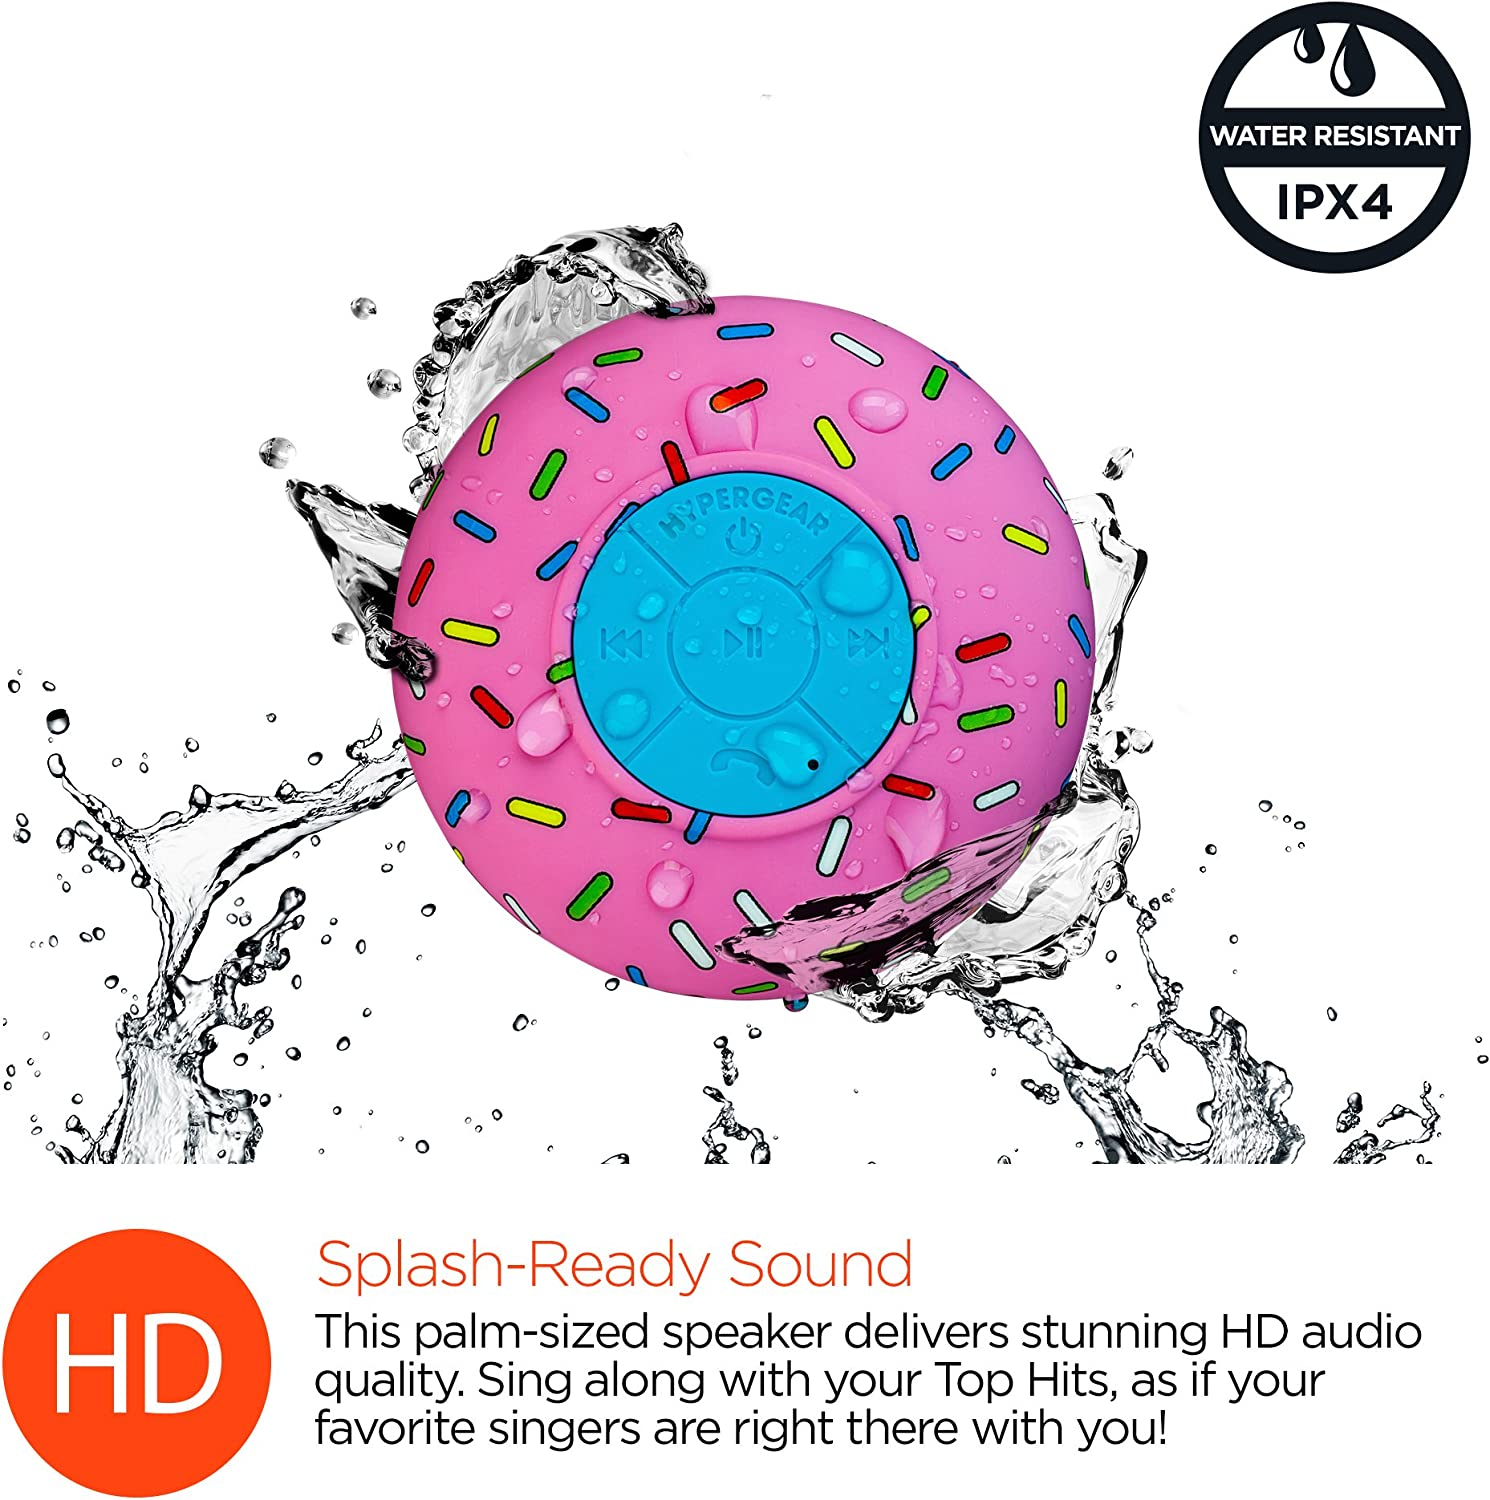 Hands-free Speakerphone With Built-in Microphone For Calls//Playlist /& Volume Control HyperGear H2O Water Resistant Wireless Indoor//Outdoor HD Shower Speaker 3.0 Bluetooth Technology 6hrs Playtime